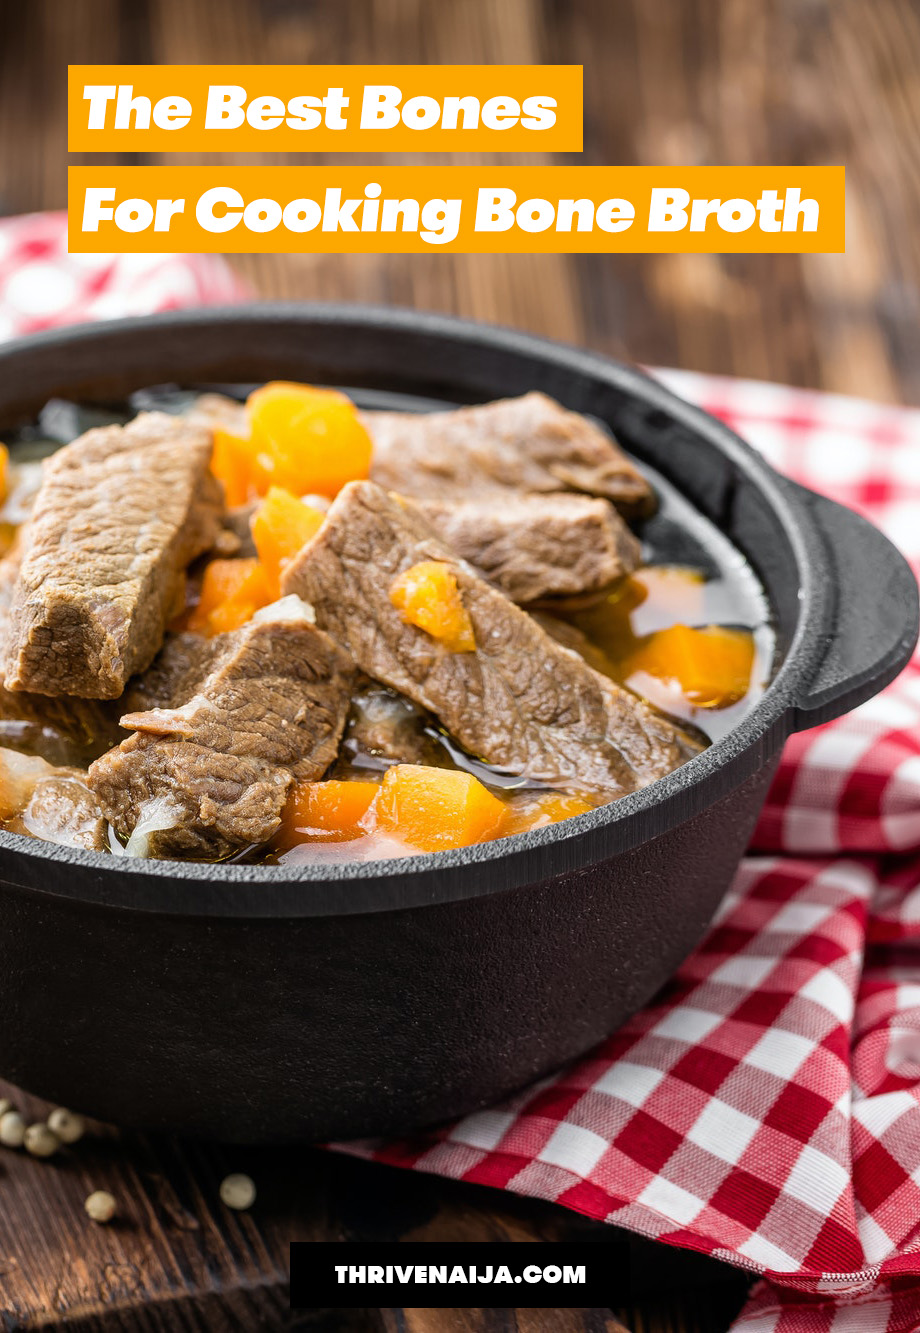 what are the best bones for bone broth